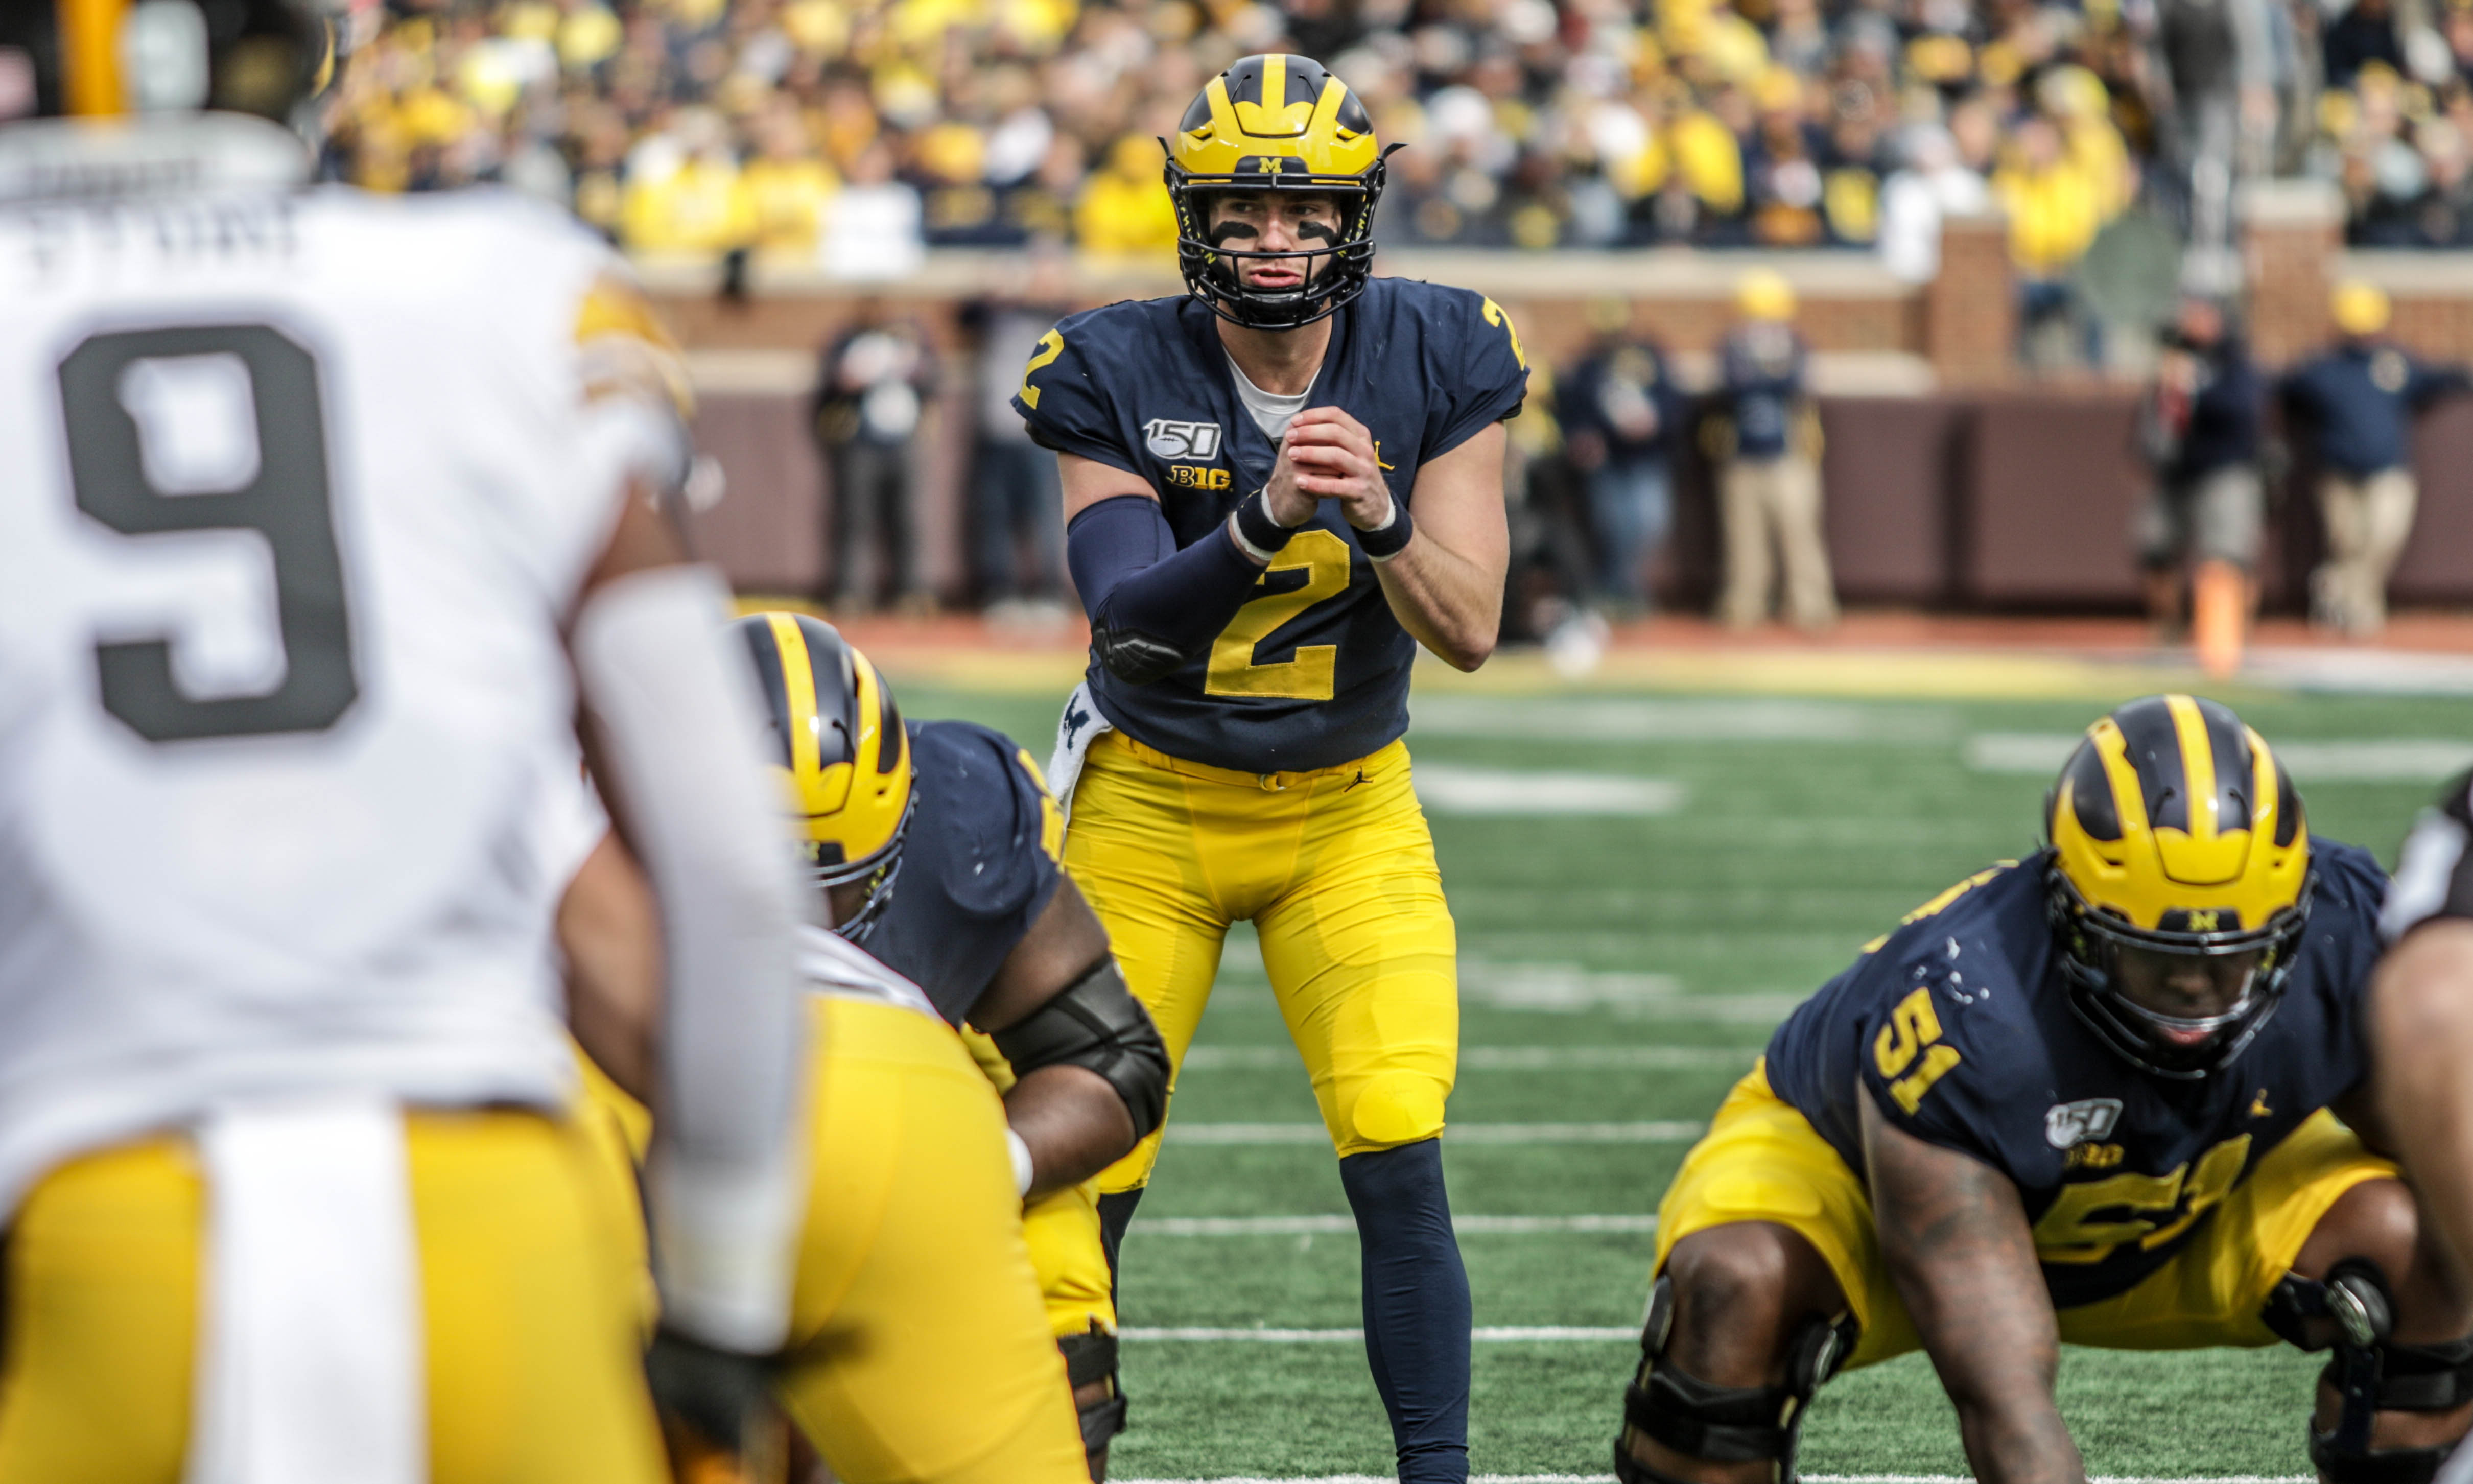 Opinion Roundtable: Are We Being Too Hard On Michigan's Offense?